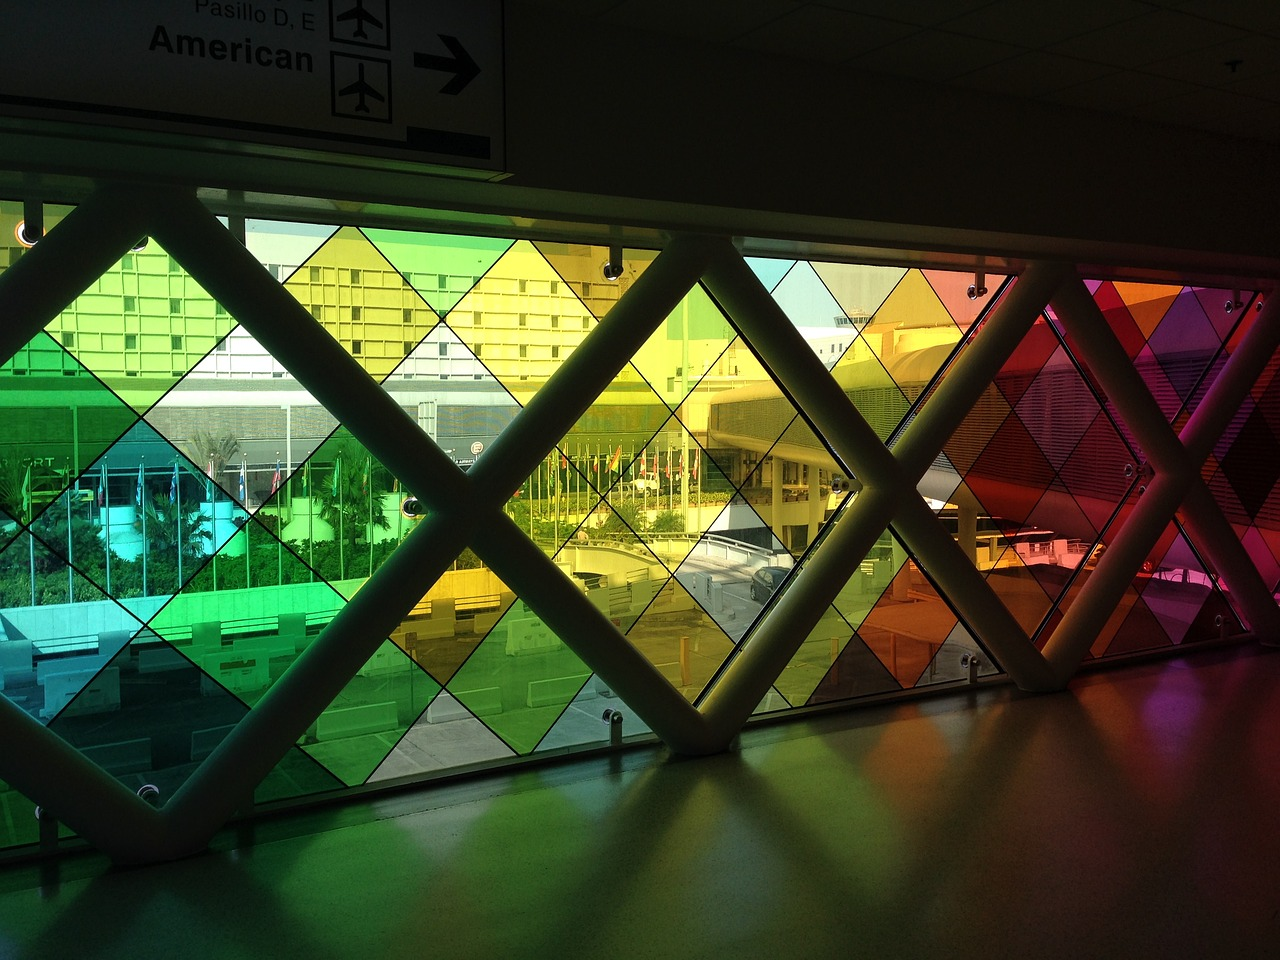 Miami Airport Stained Glass